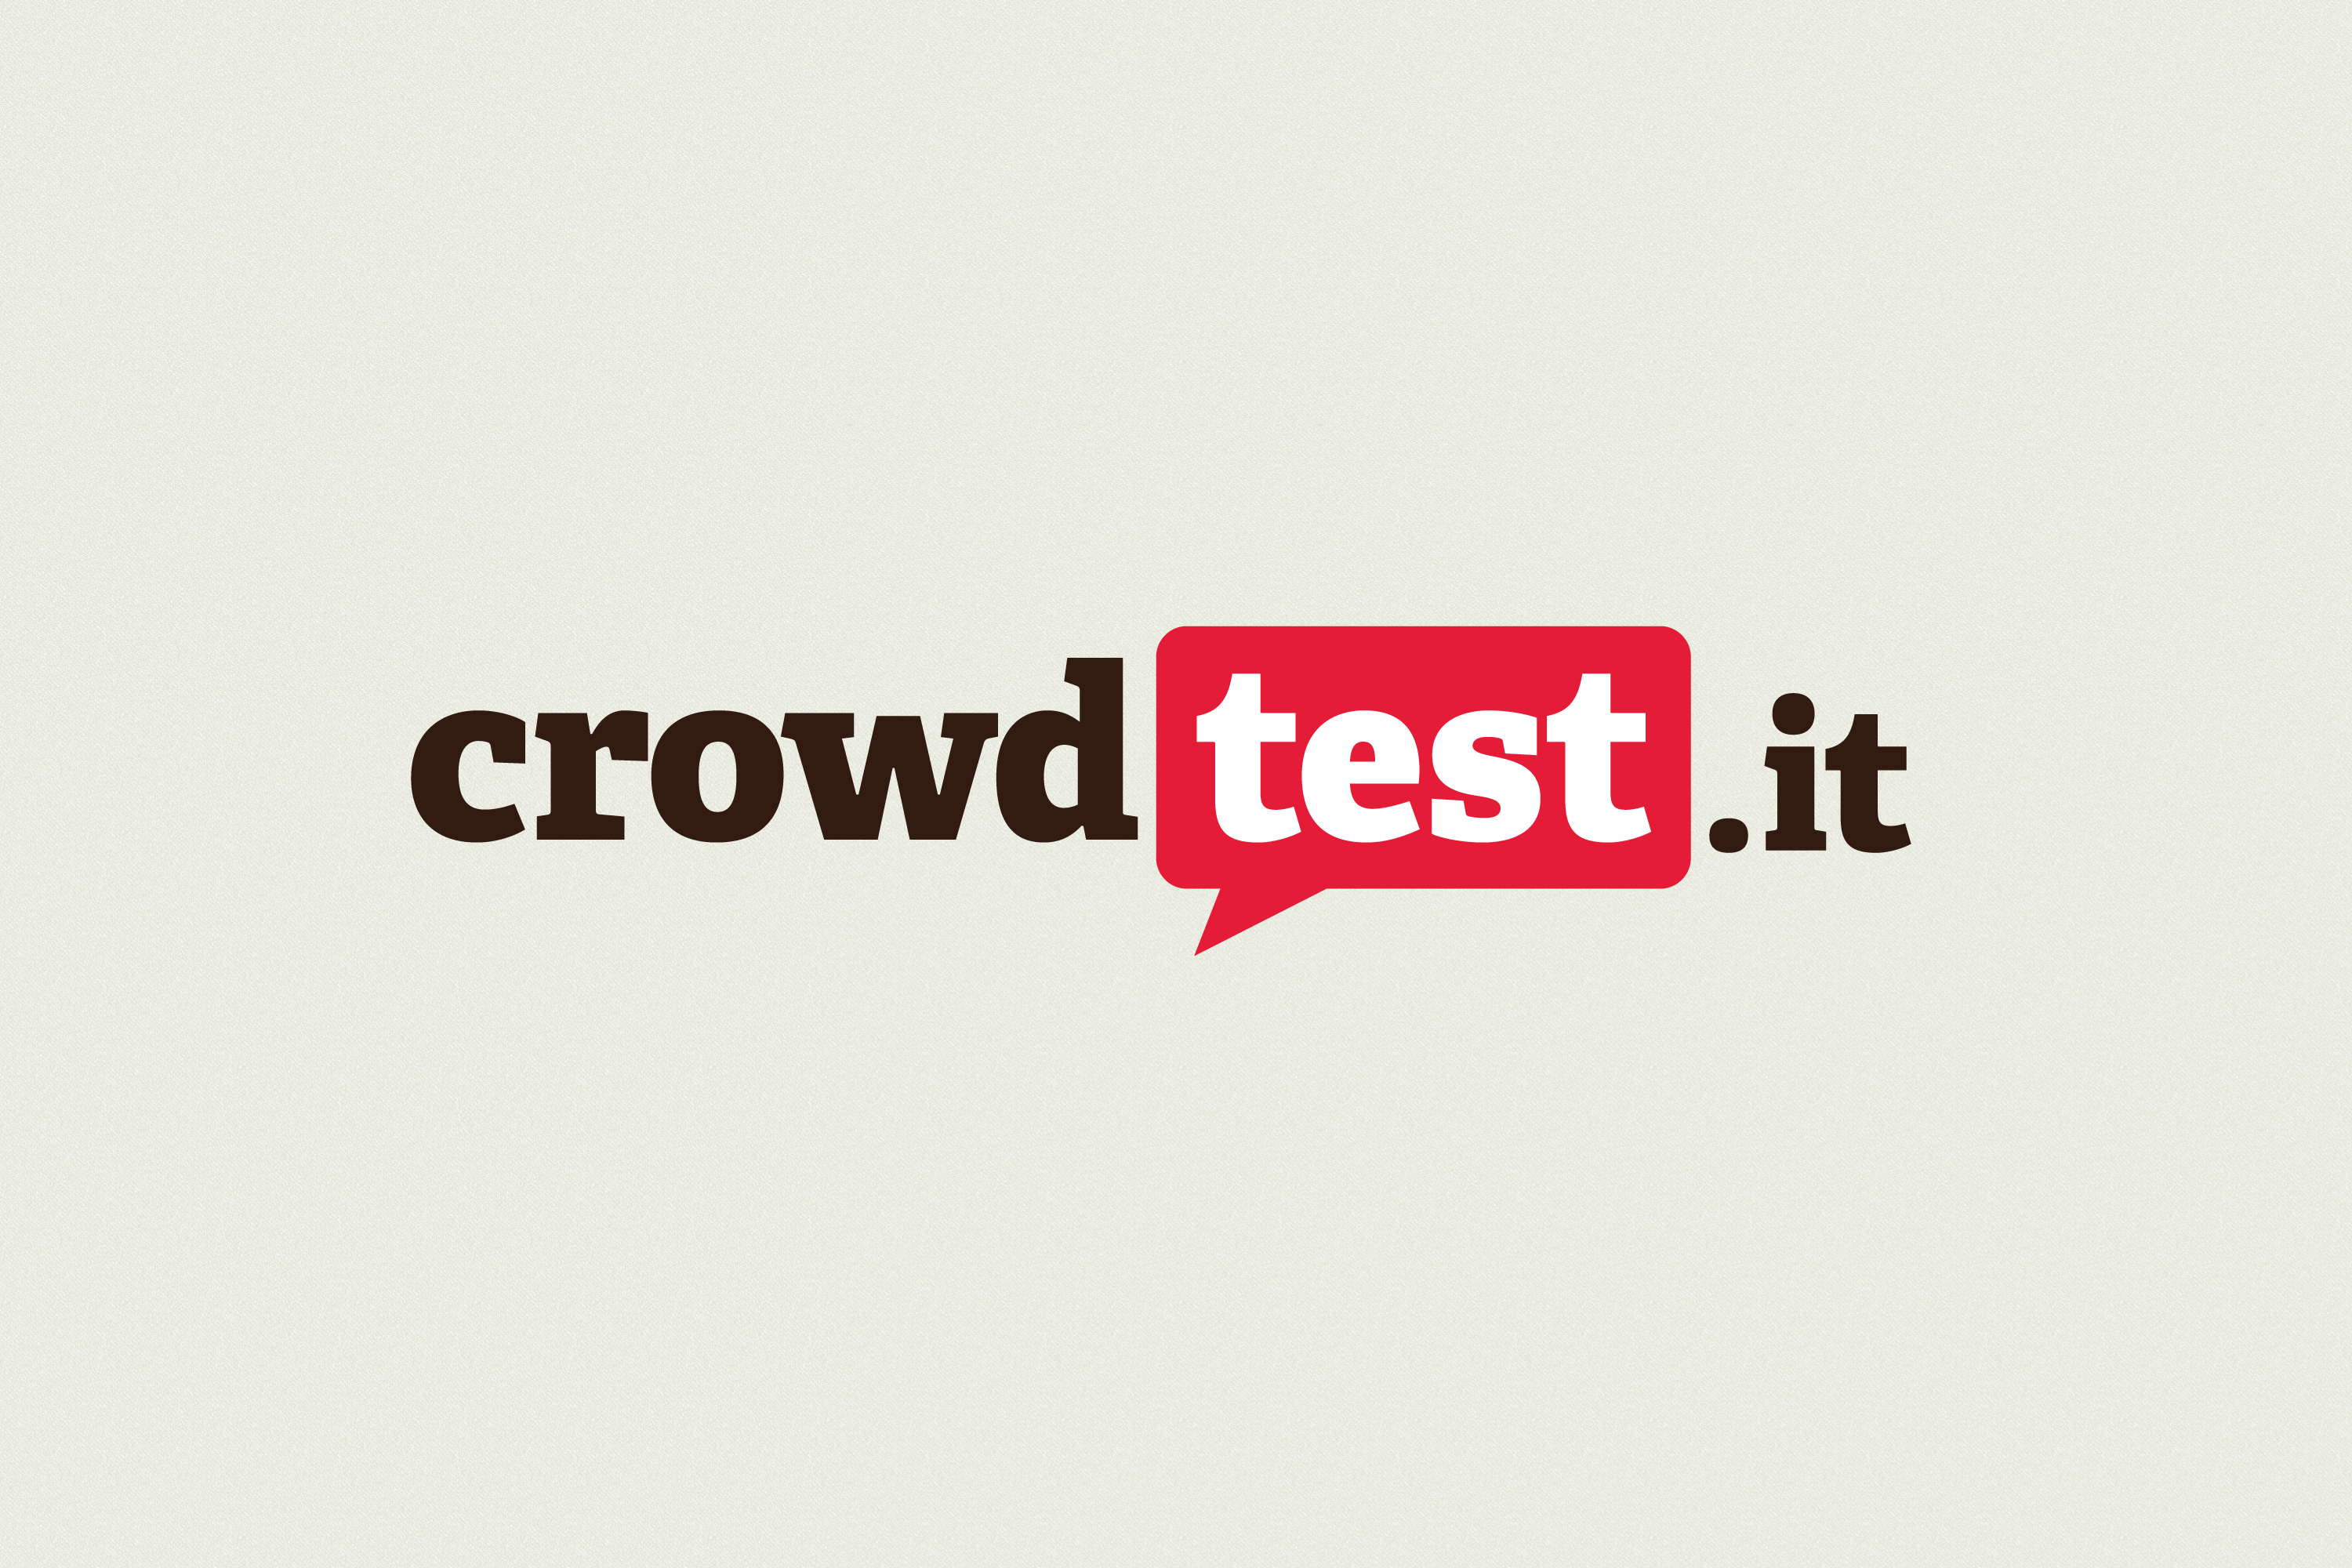 Crowd Test.it